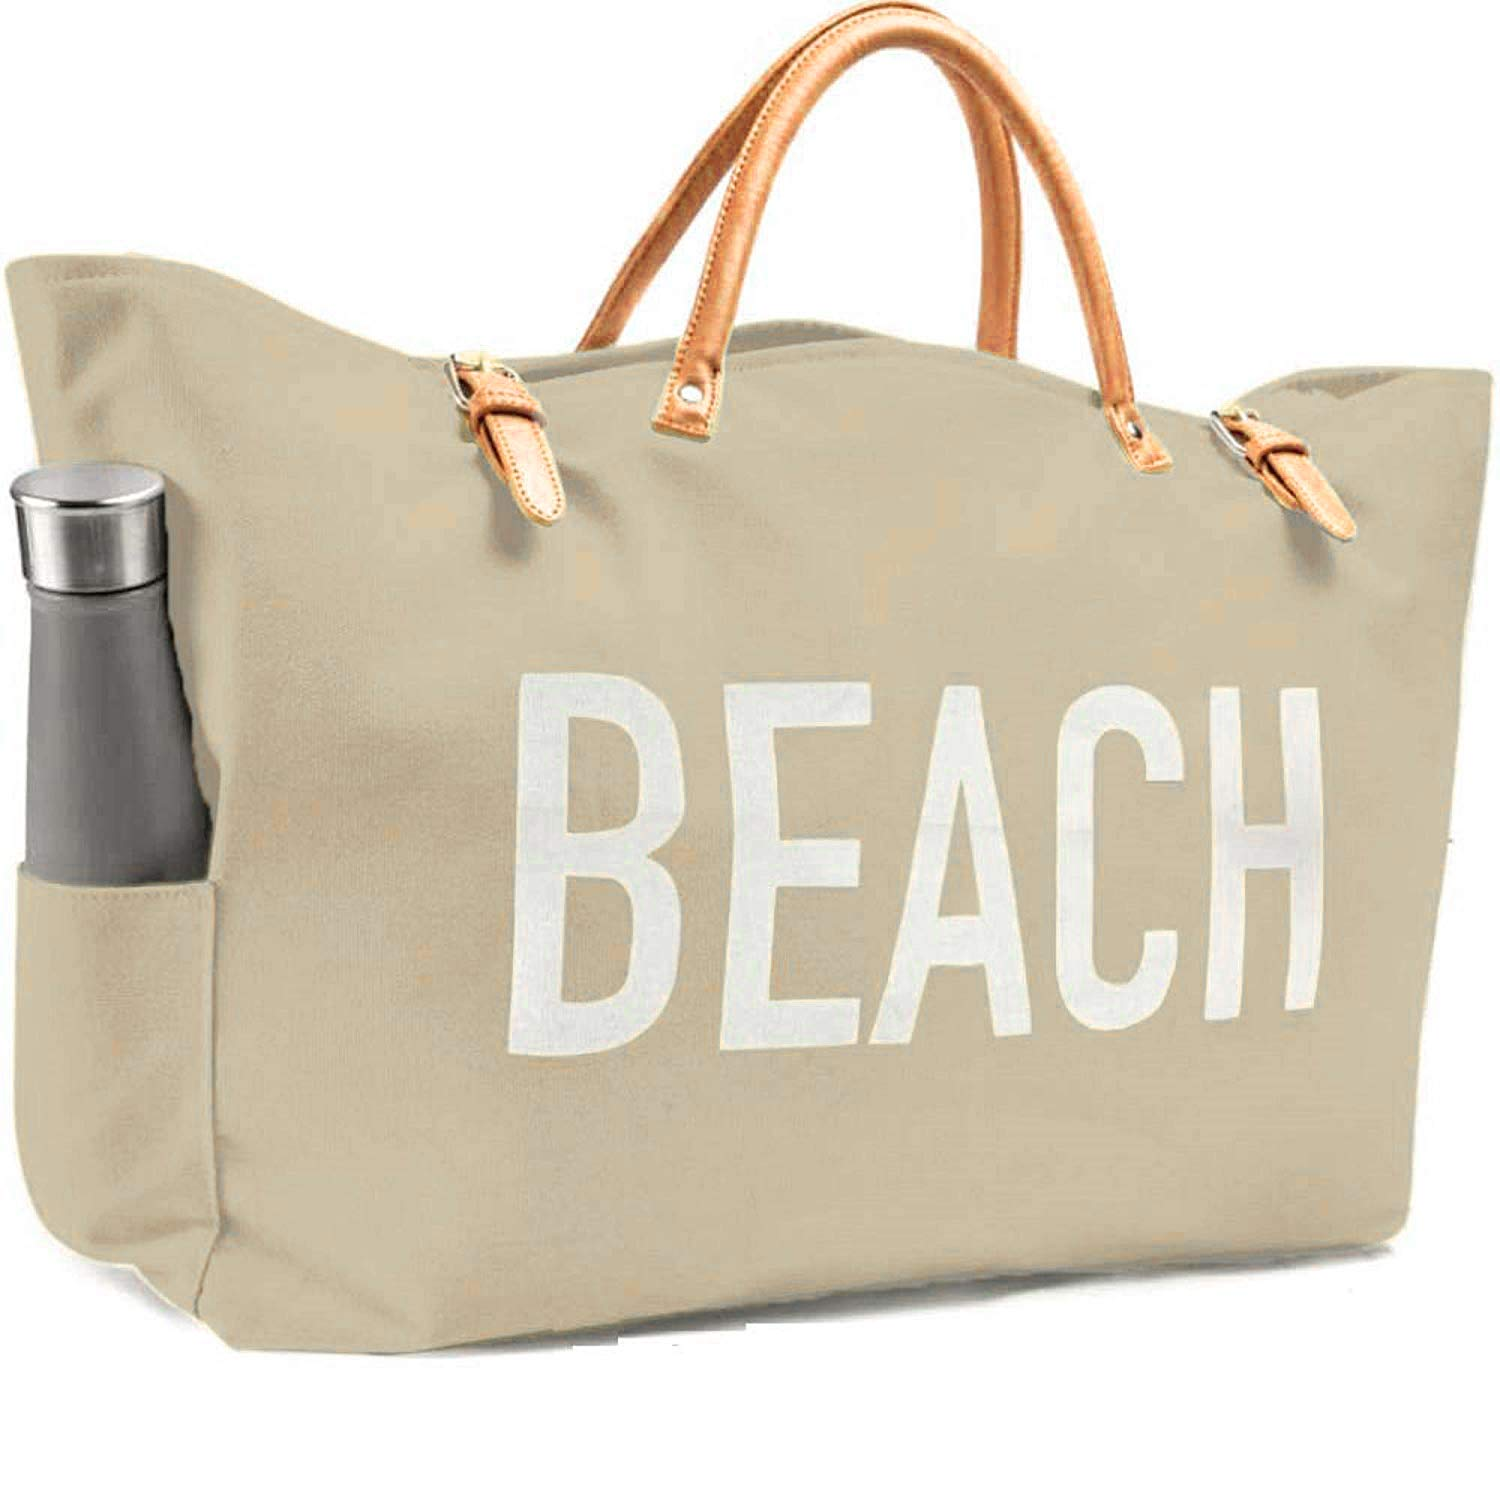 KEHO Large Canvas Beach Bag Travel Tote (Warm Sand), Waterproof Lining, 2 Drink Holders, Pockets, FREE Phone Case